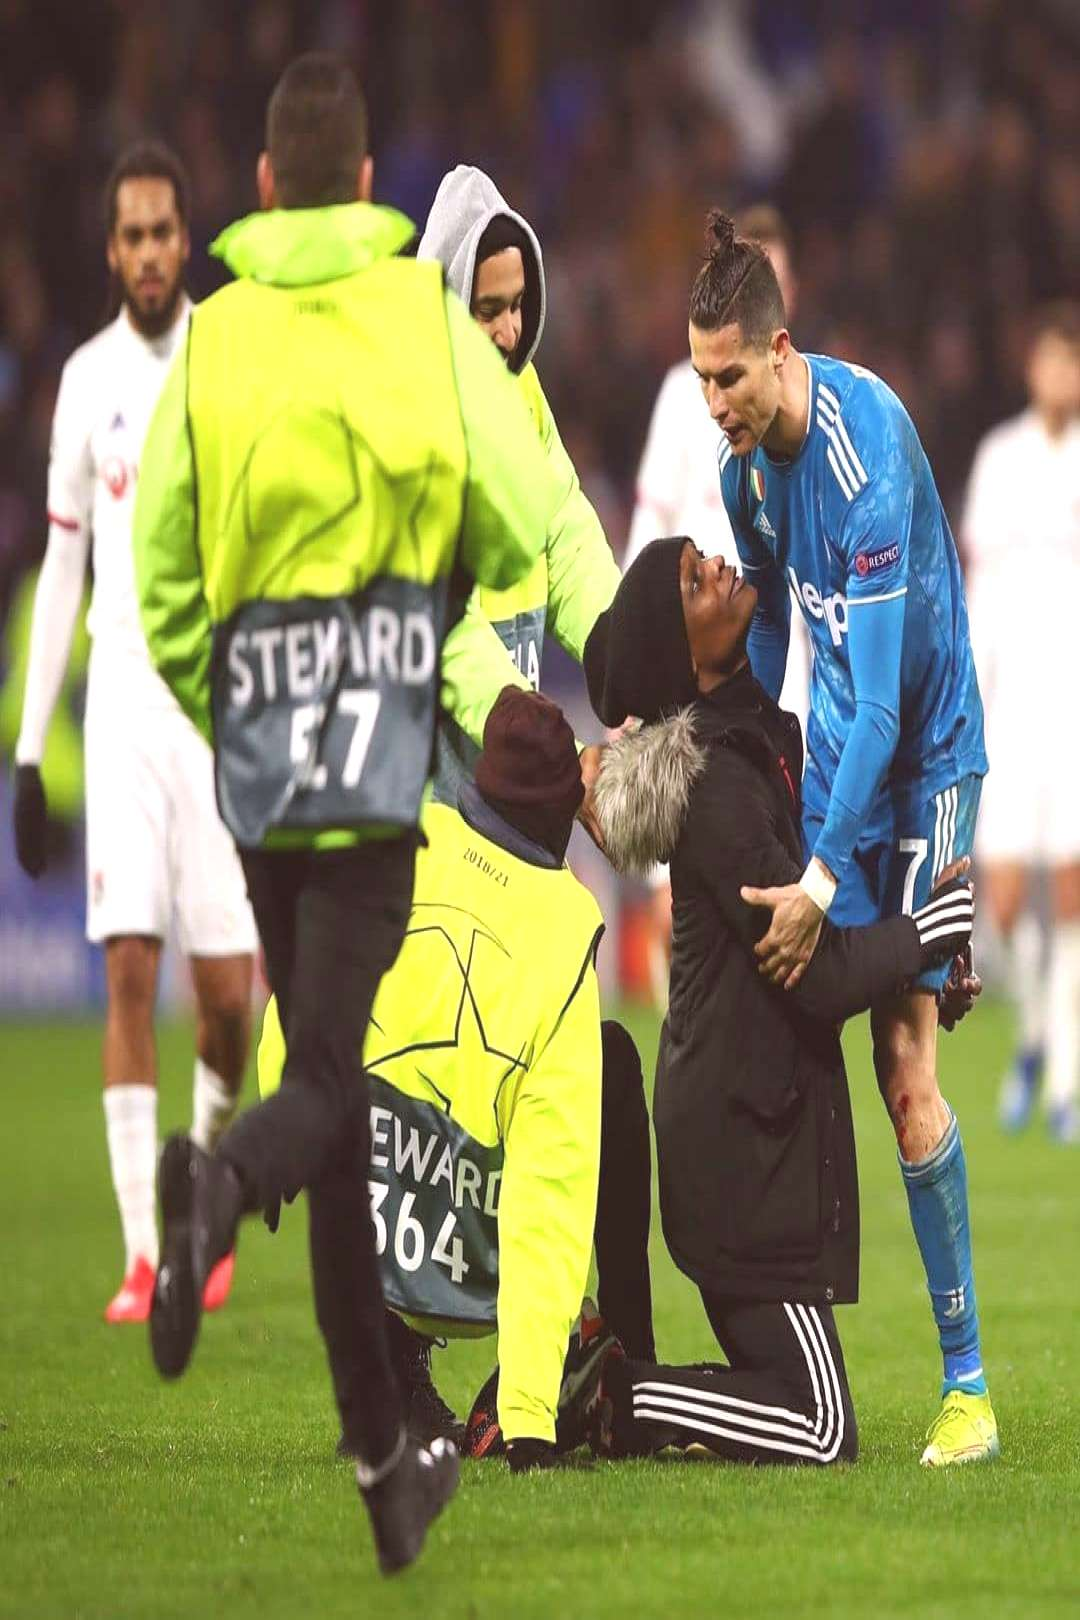 Pitch Invader during the Game. Fan of Cristiano Ronaldo